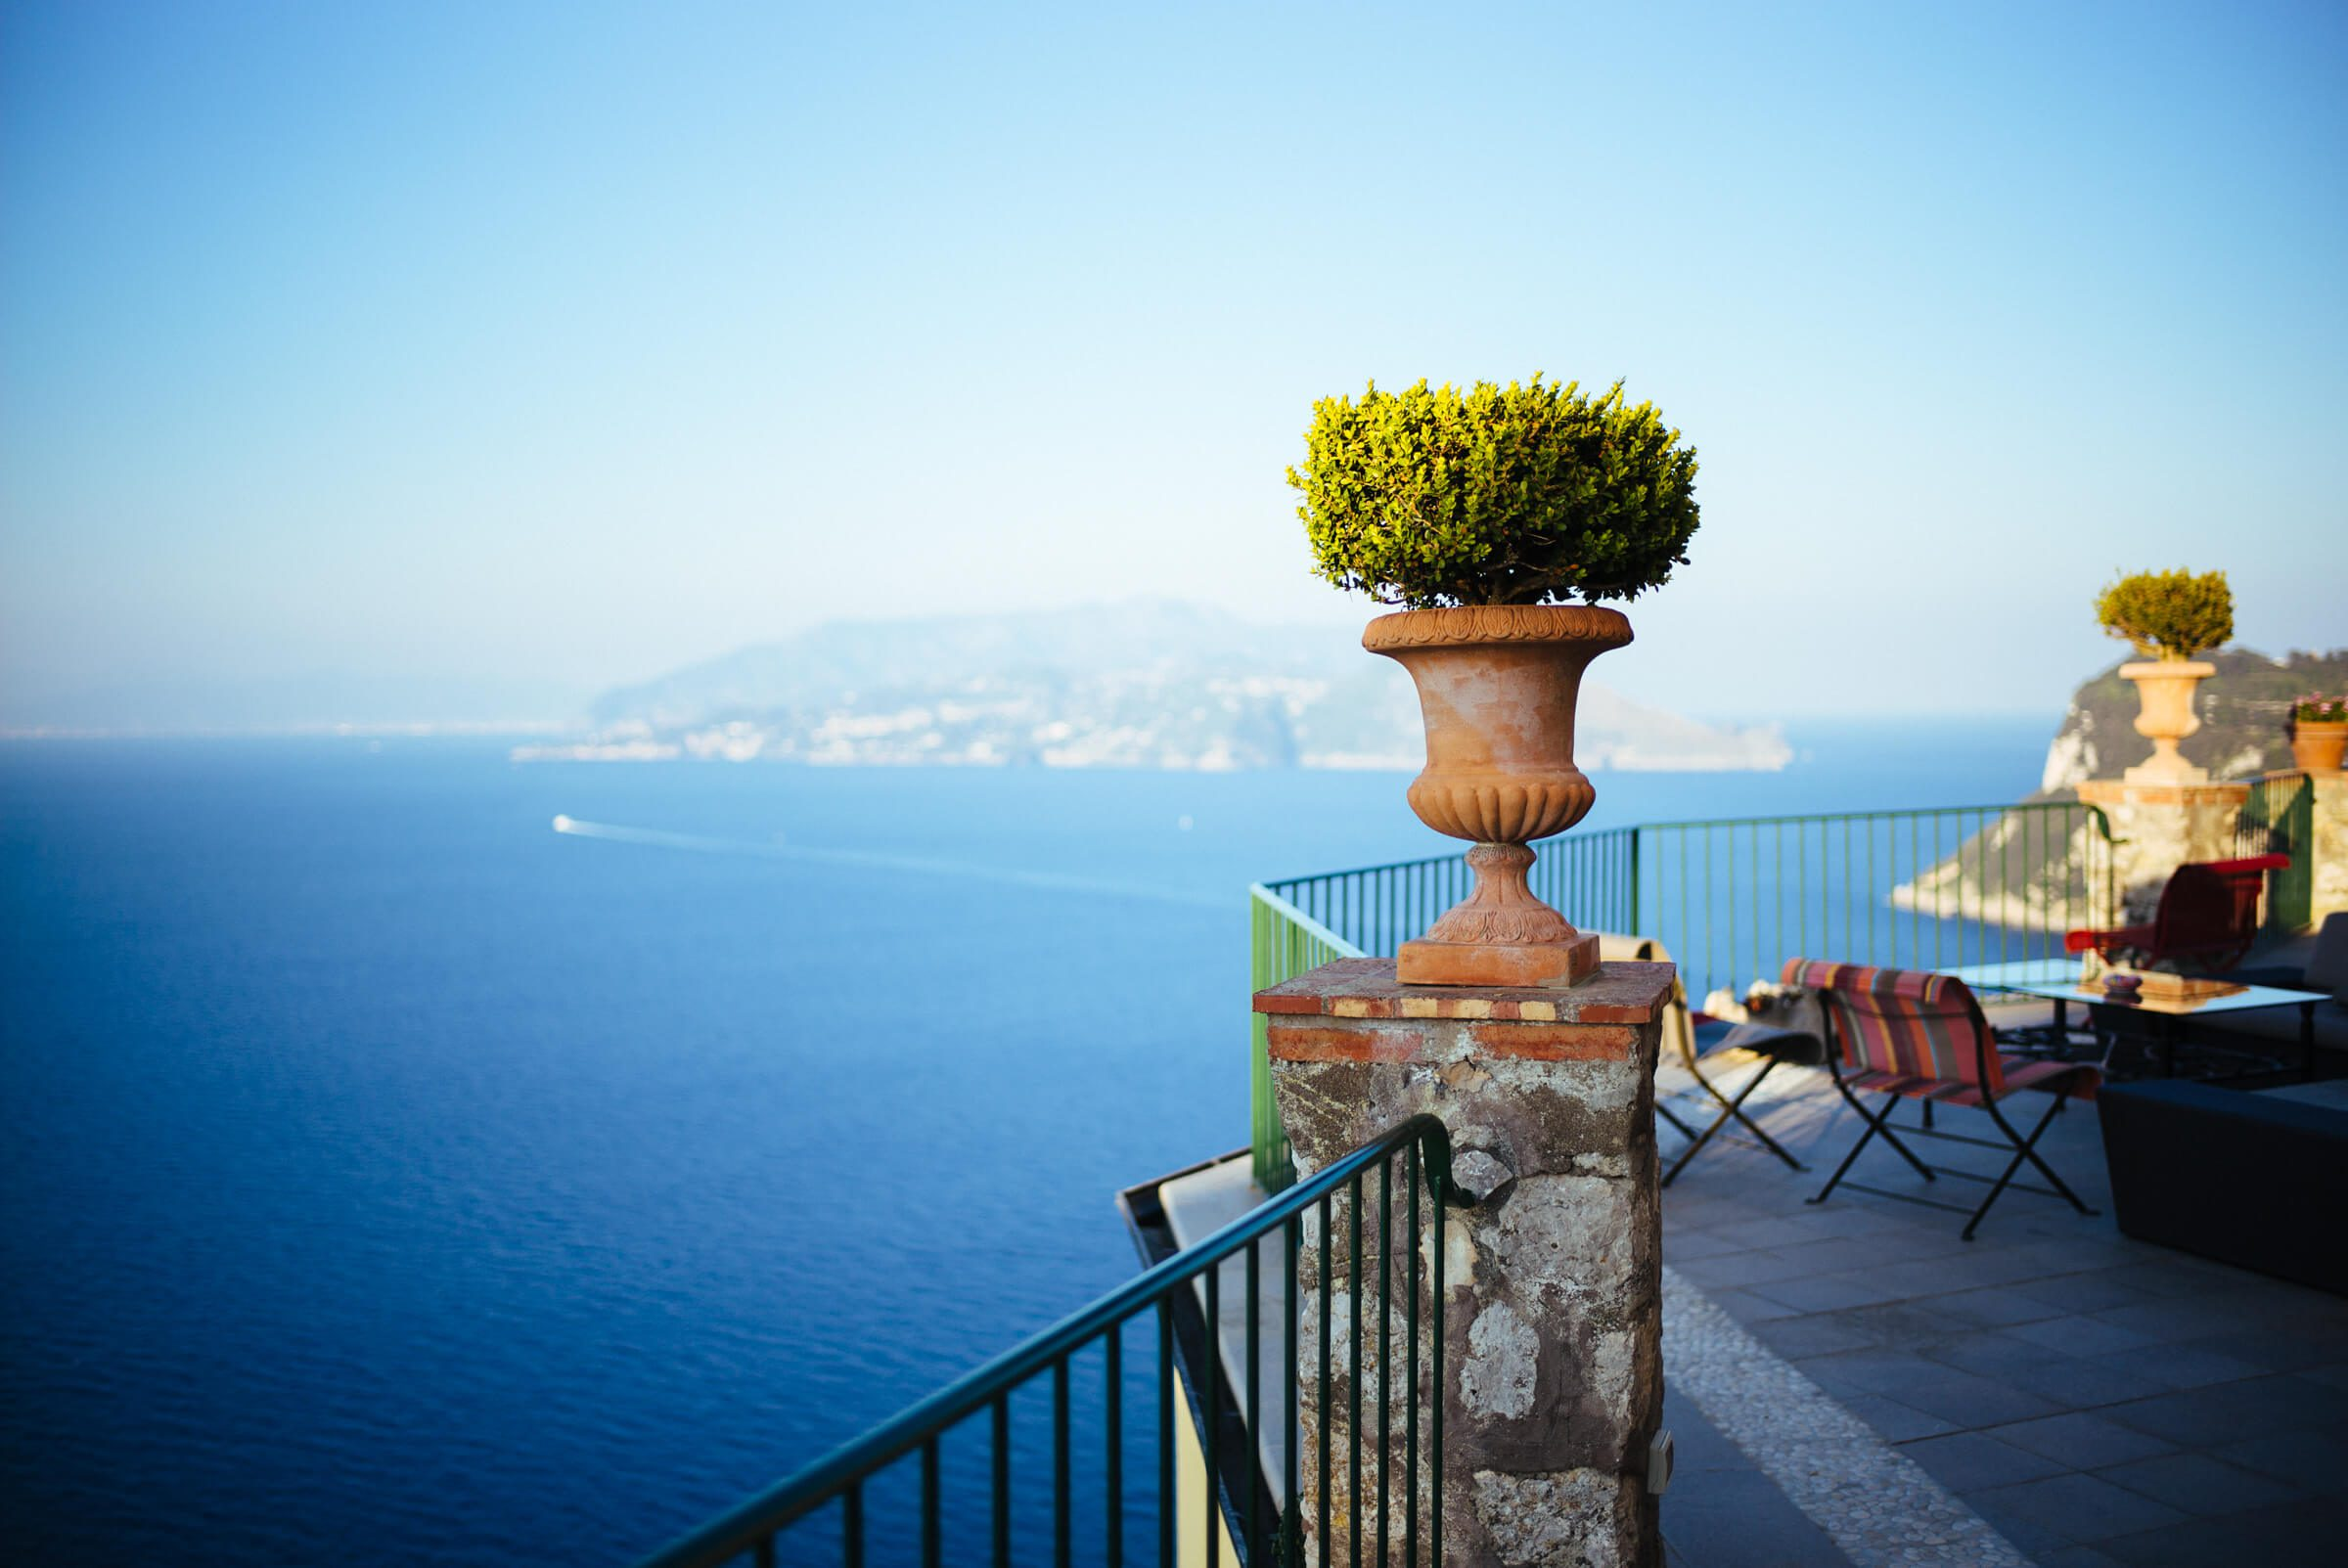 Overlook on the balcony off Hotel Caesar Augustus Capri Italy, The Taste SF